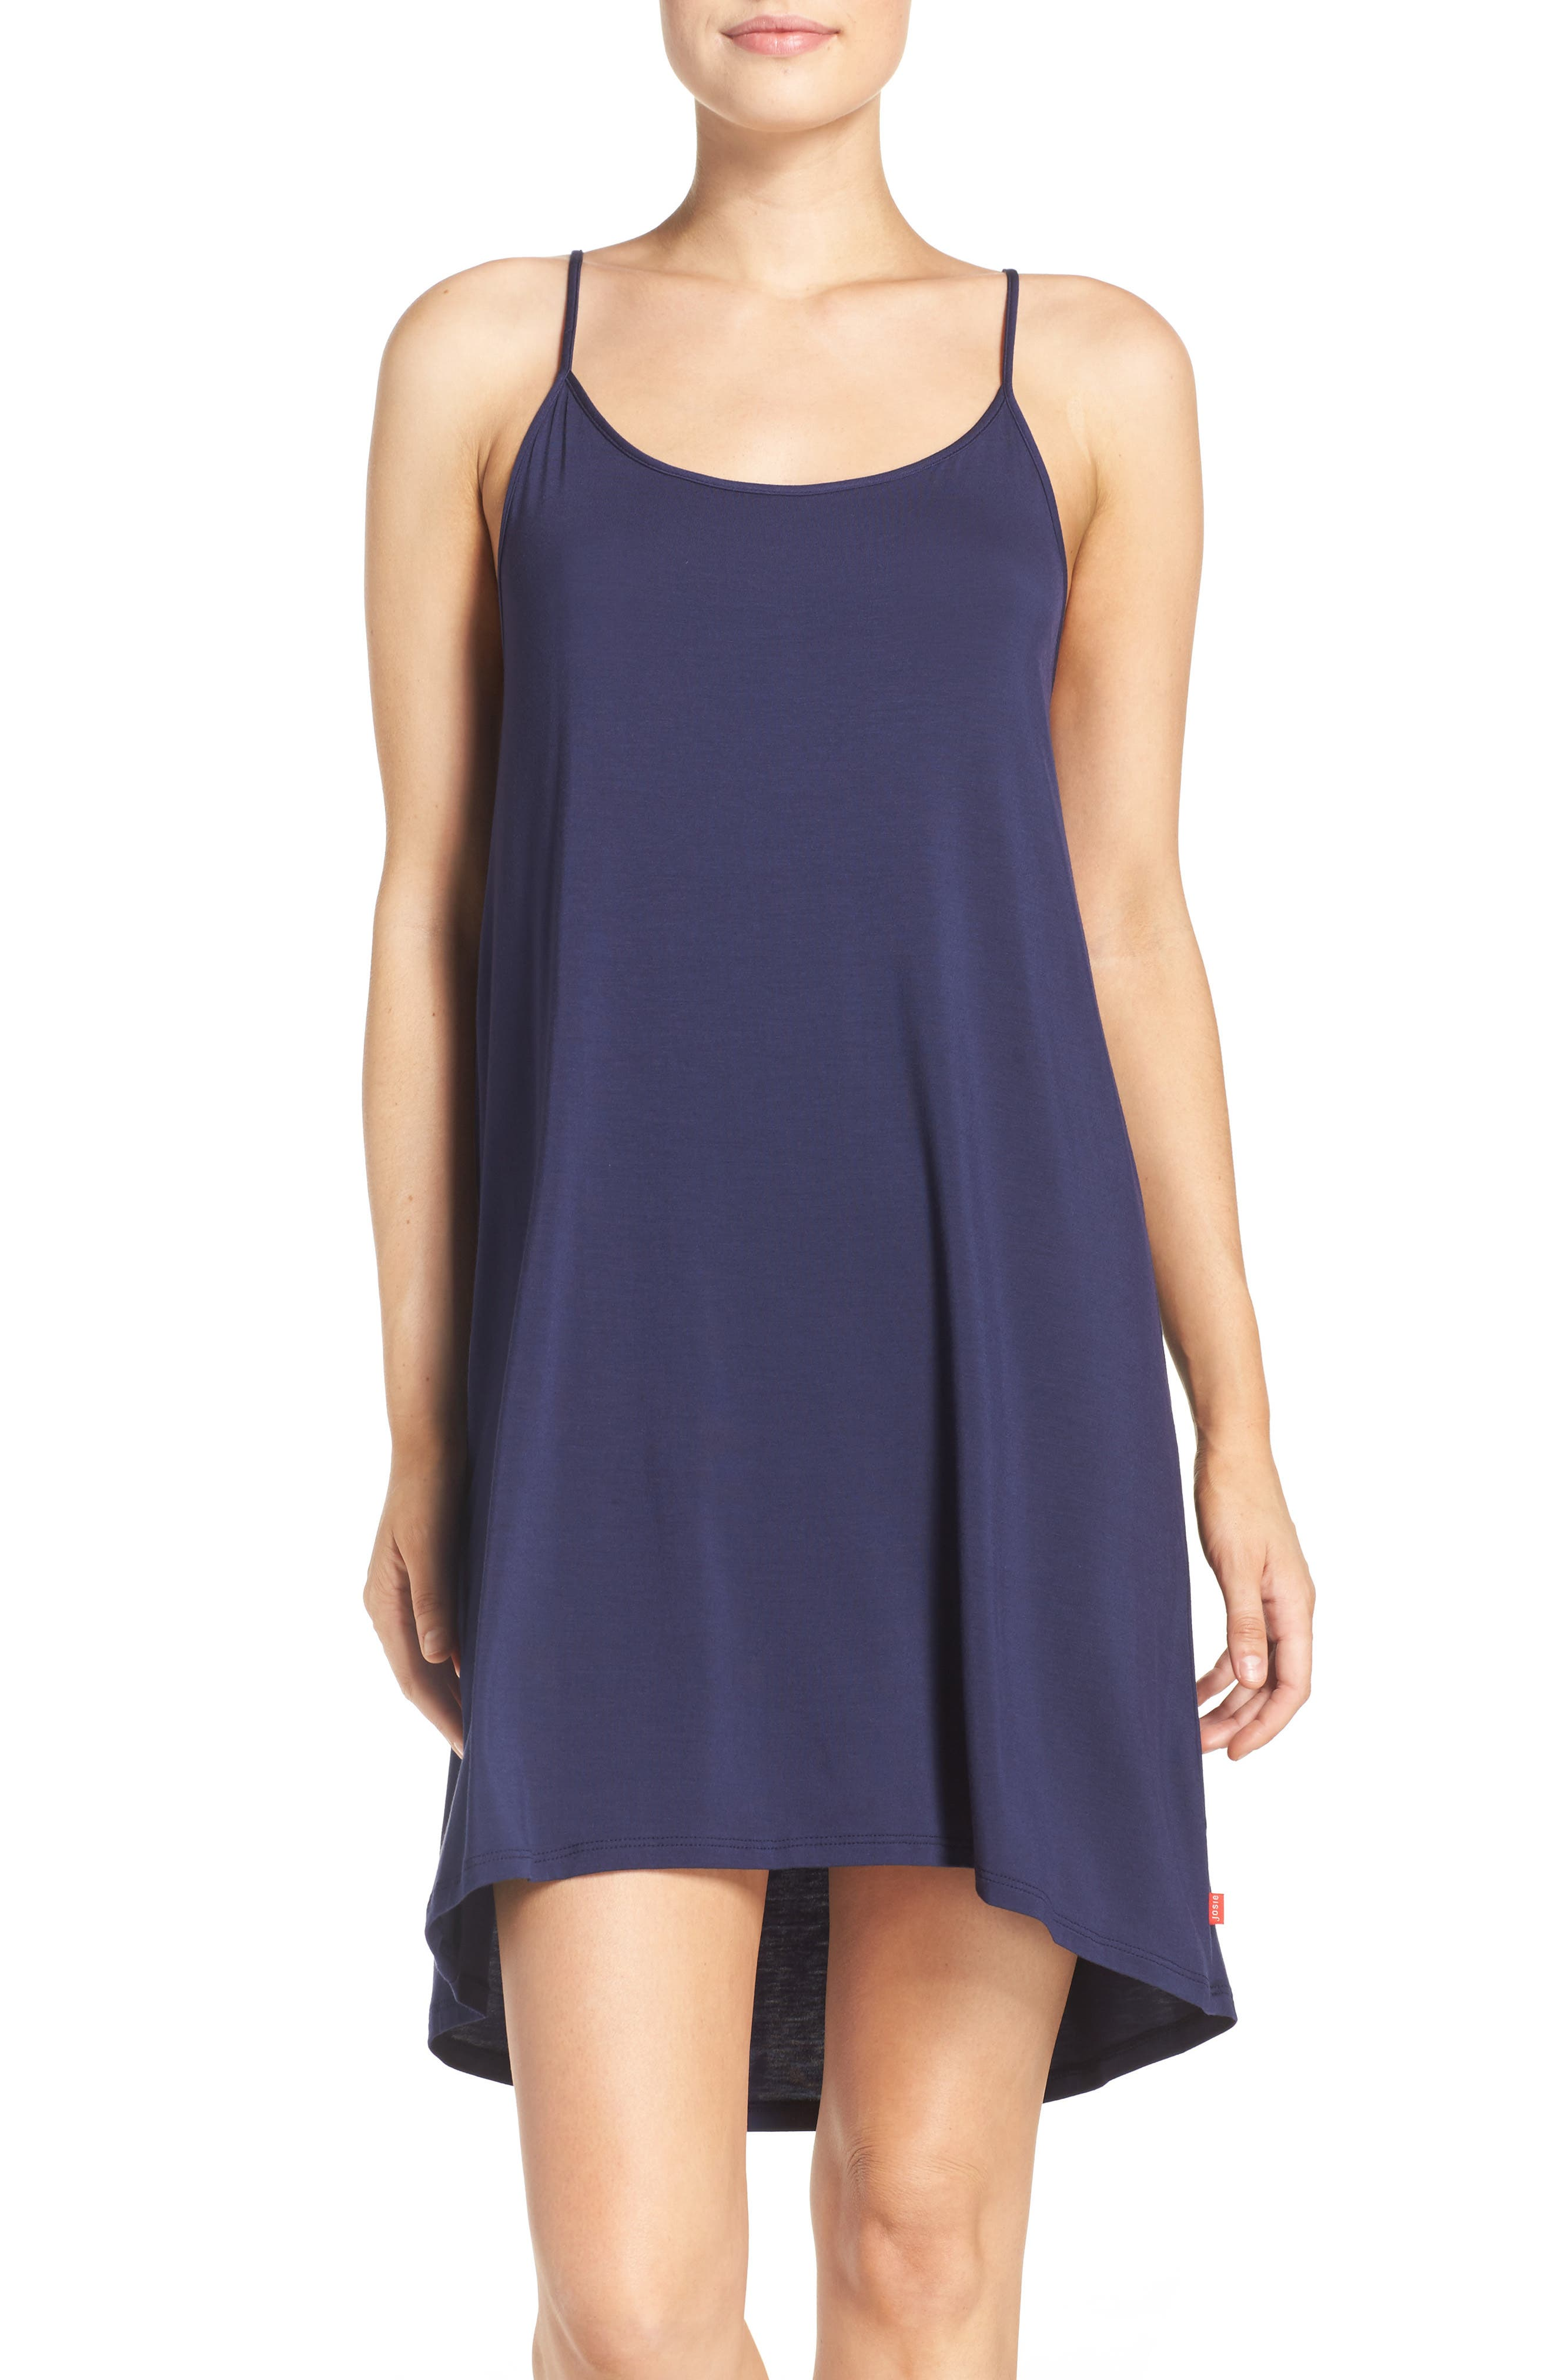 Tees Chemise in Midnight Navy